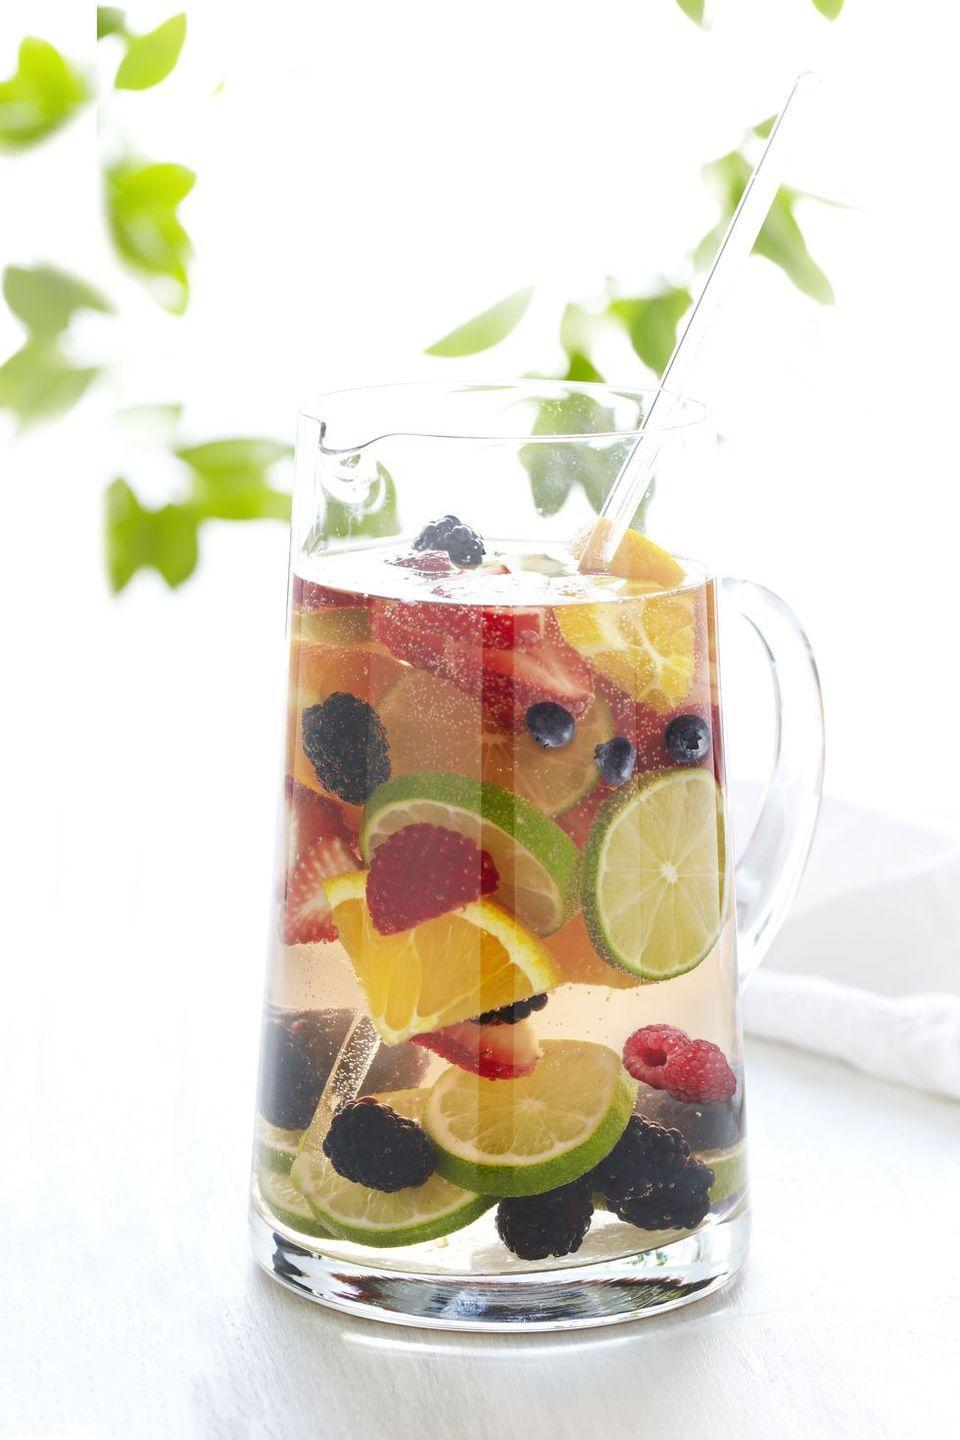 """<p>If it's a refreshing drink you're after, then look no further than this berry and citrus spritzer that includes rosé, orange liqueur, and a range of fruits and berries. </p><p><a href=""""https://www.goodhousekeeping.com/food-recipes/a15280/berry-citrus-spritzer-recipe-ghk0713/"""" rel=""""nofollow noopener"""" target=""""_blank"""" data-ylk=""""slk:Get the recipe for Berry and Citrus Spritzer »"""" class=""""link rapid-noclick-resp""""><em>Get the recipe for Berry and Citrus Spritzer »</em></a></p>"""